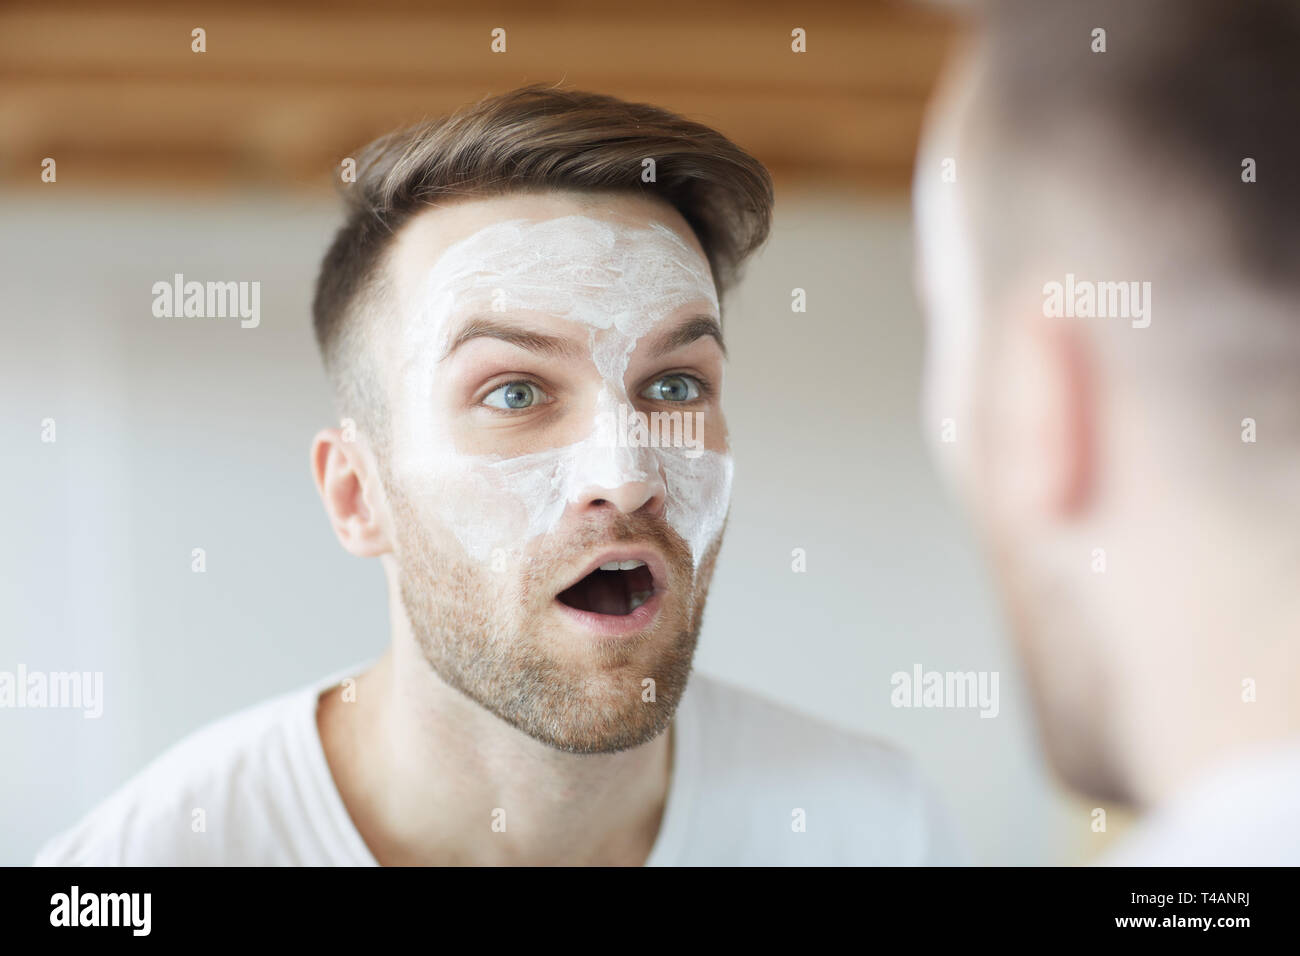 Man Making Faces at Mirror - Stock Image